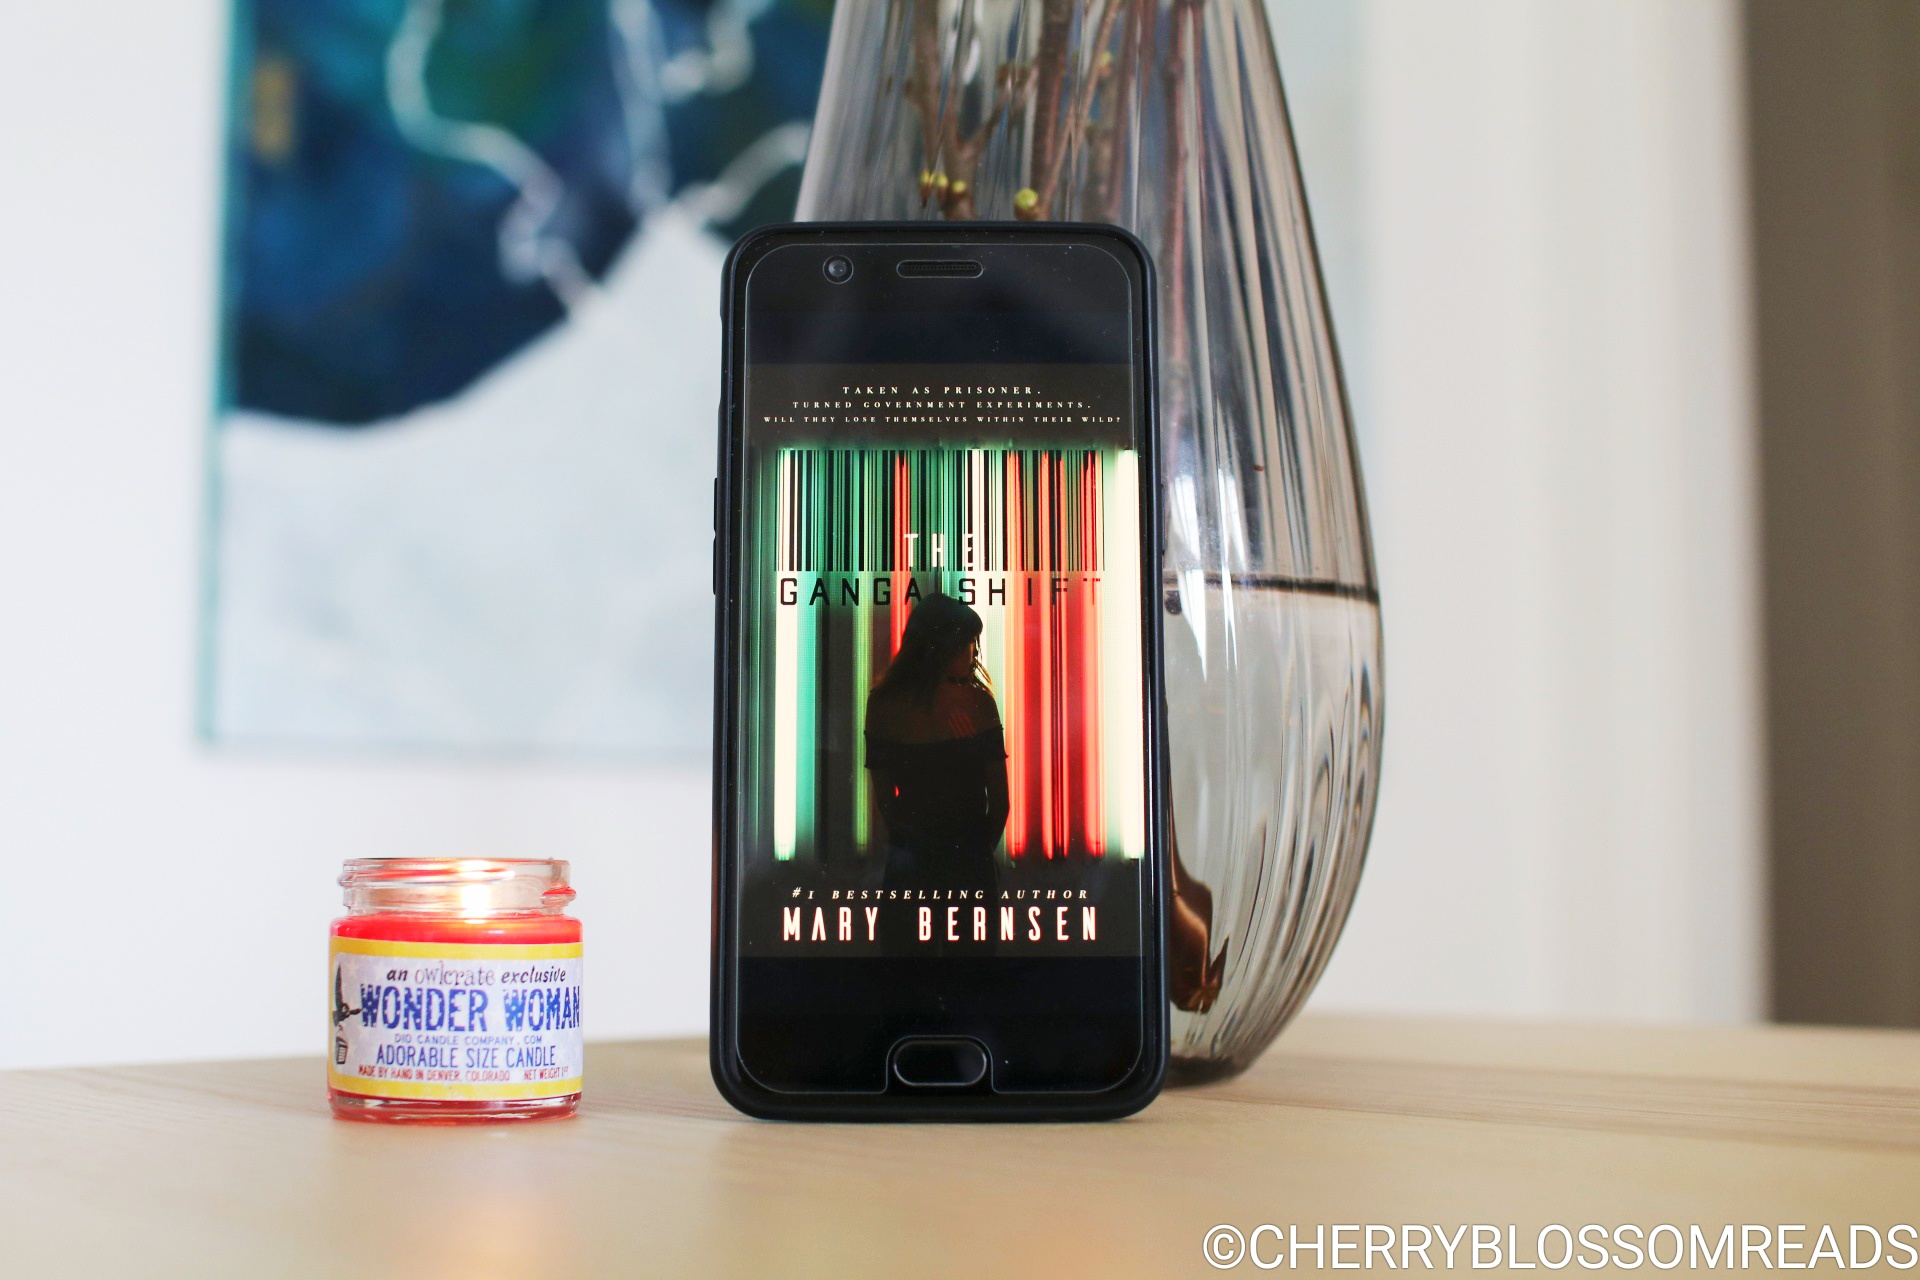 The cover of the e-book The Ganga Shift on a mobile phone next to a grey vase and a read burning candle